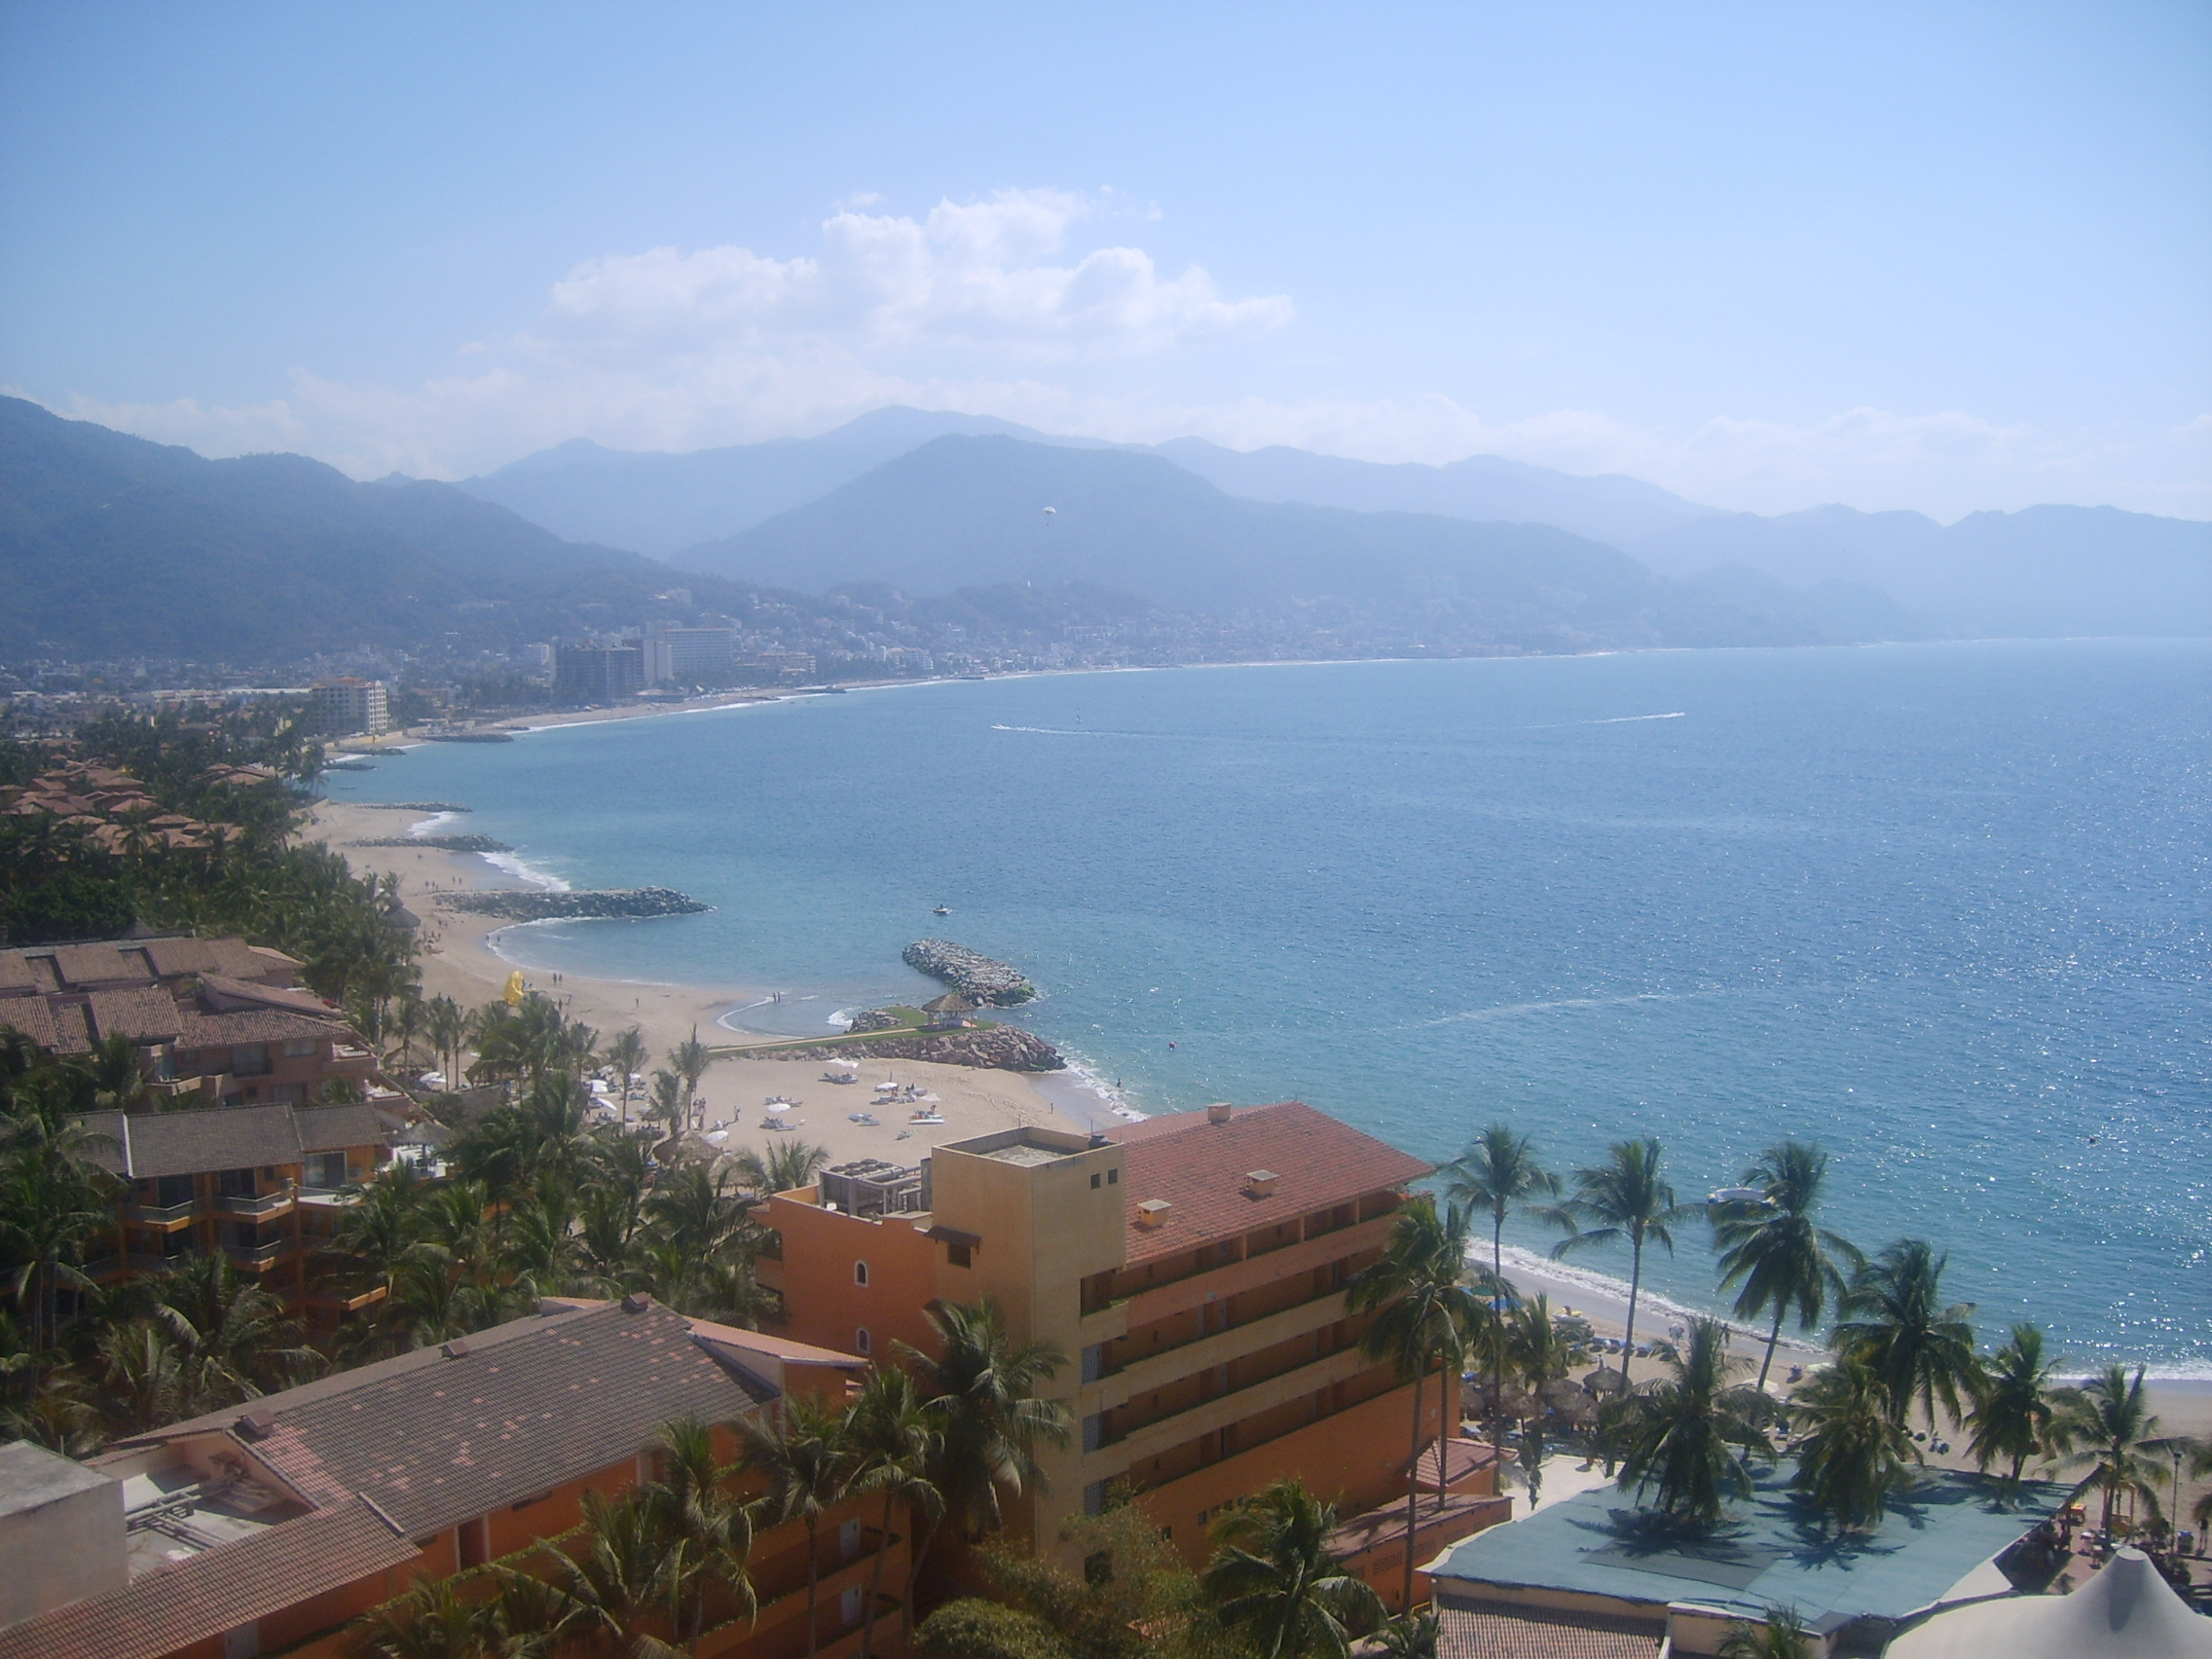 Travel With Tradewinds Travel Club to Puerto Vallarta